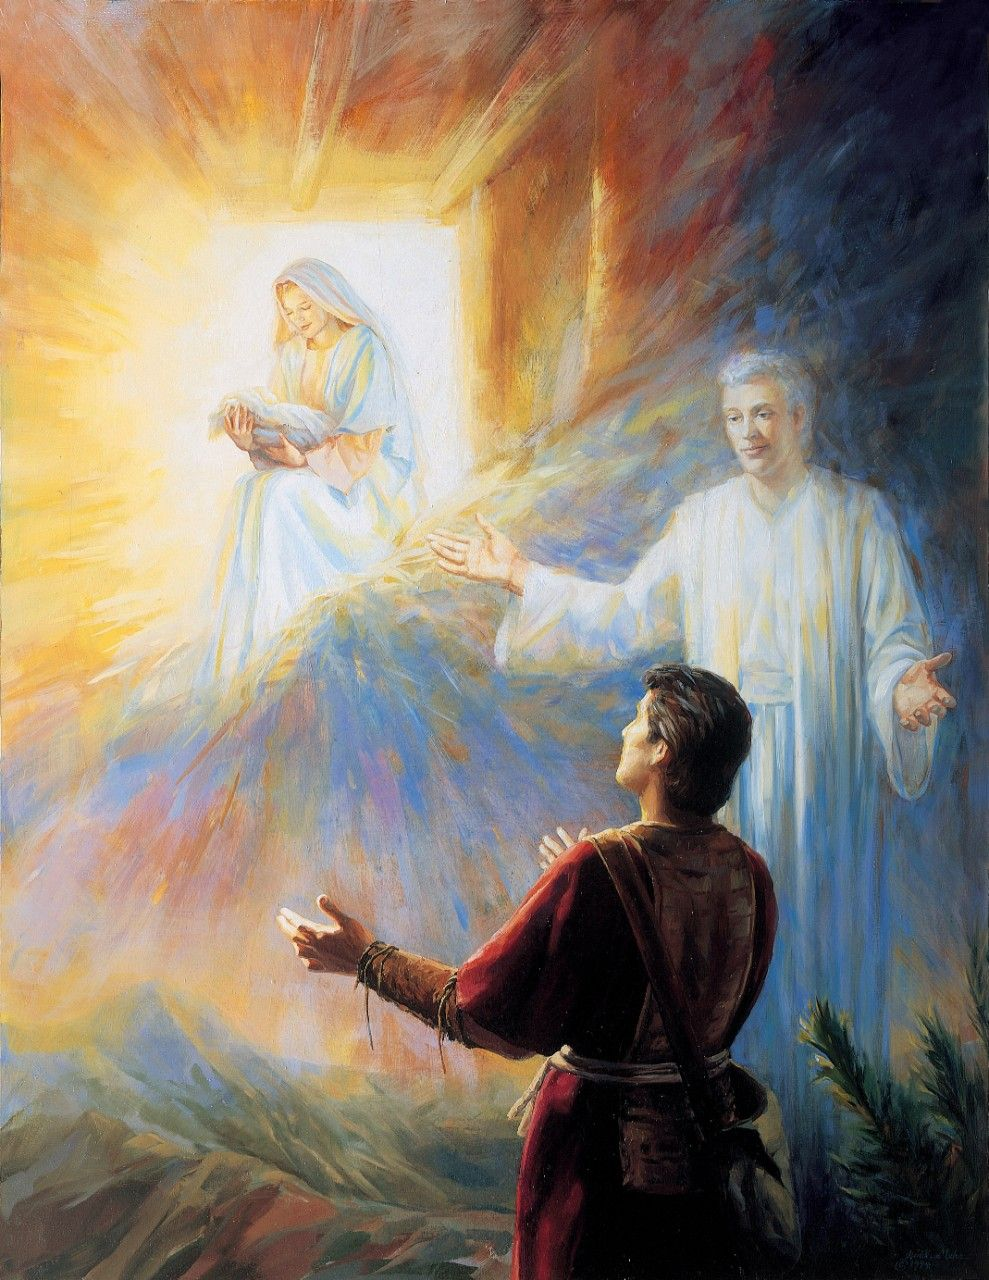 Nephi's Vision of the Virgin Mary, by Judith A. Mehr